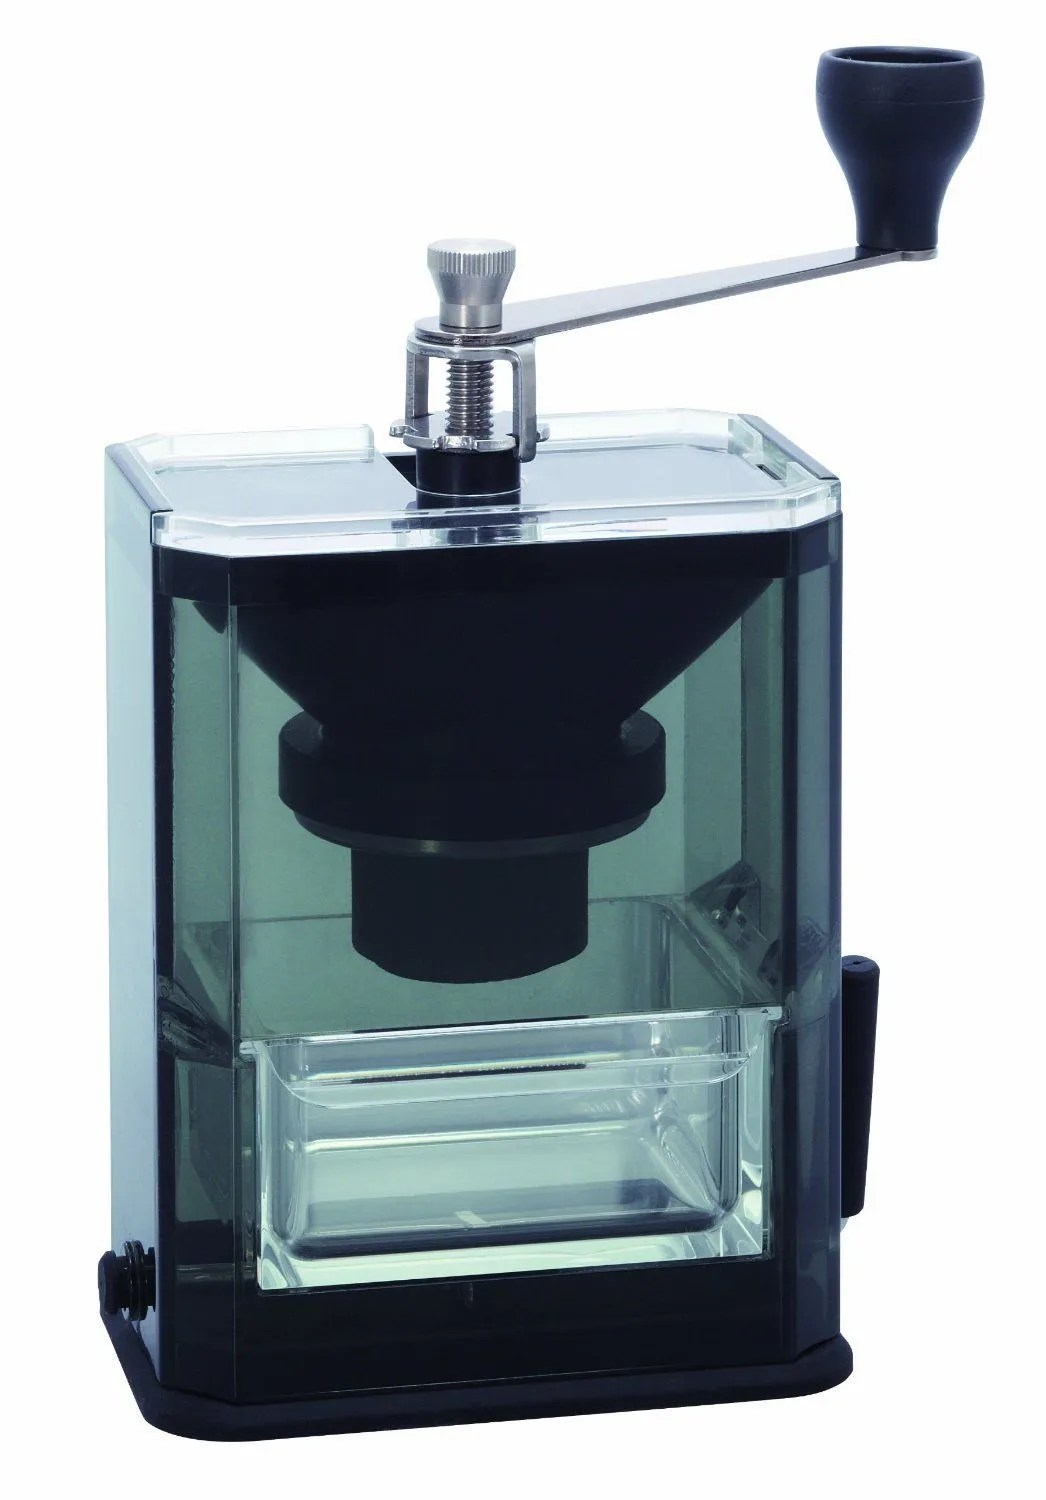 Hario Acrylic Coffee Grinder with Ceramic Burrs